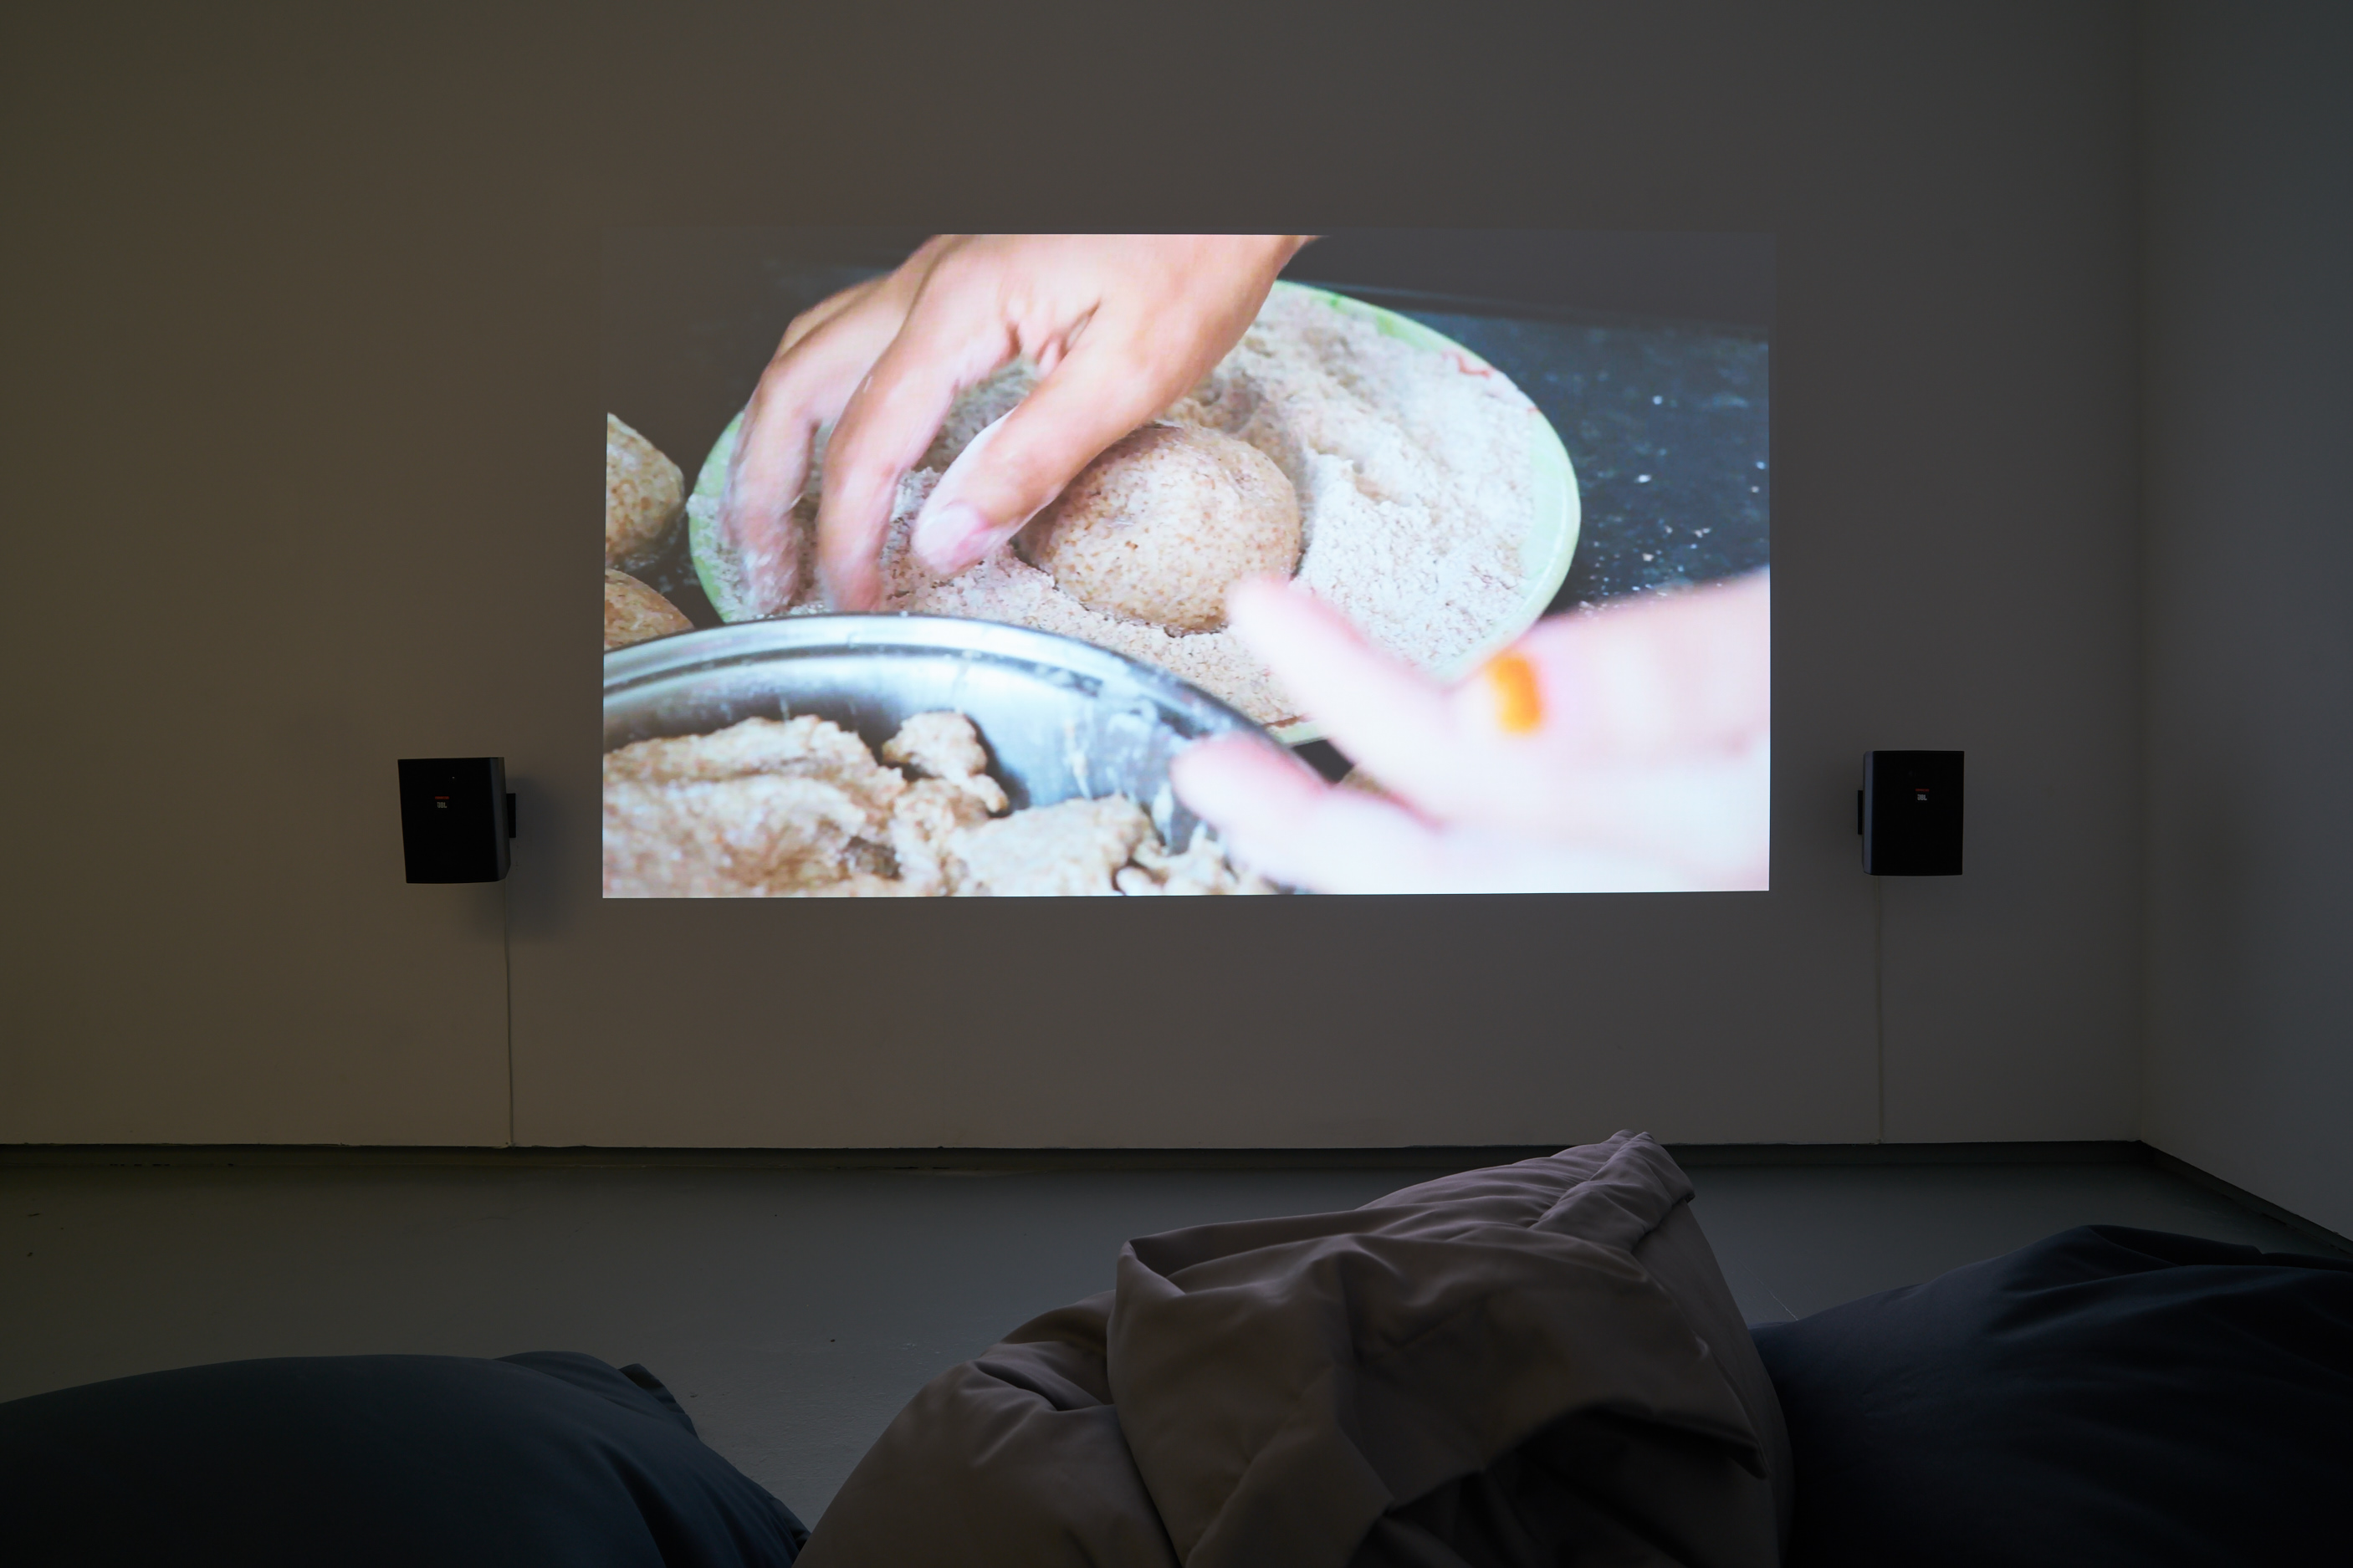 Rehana Zaman, Tell me the story Of all these things, Part 3 (2016). HD video. Tenderpixel.